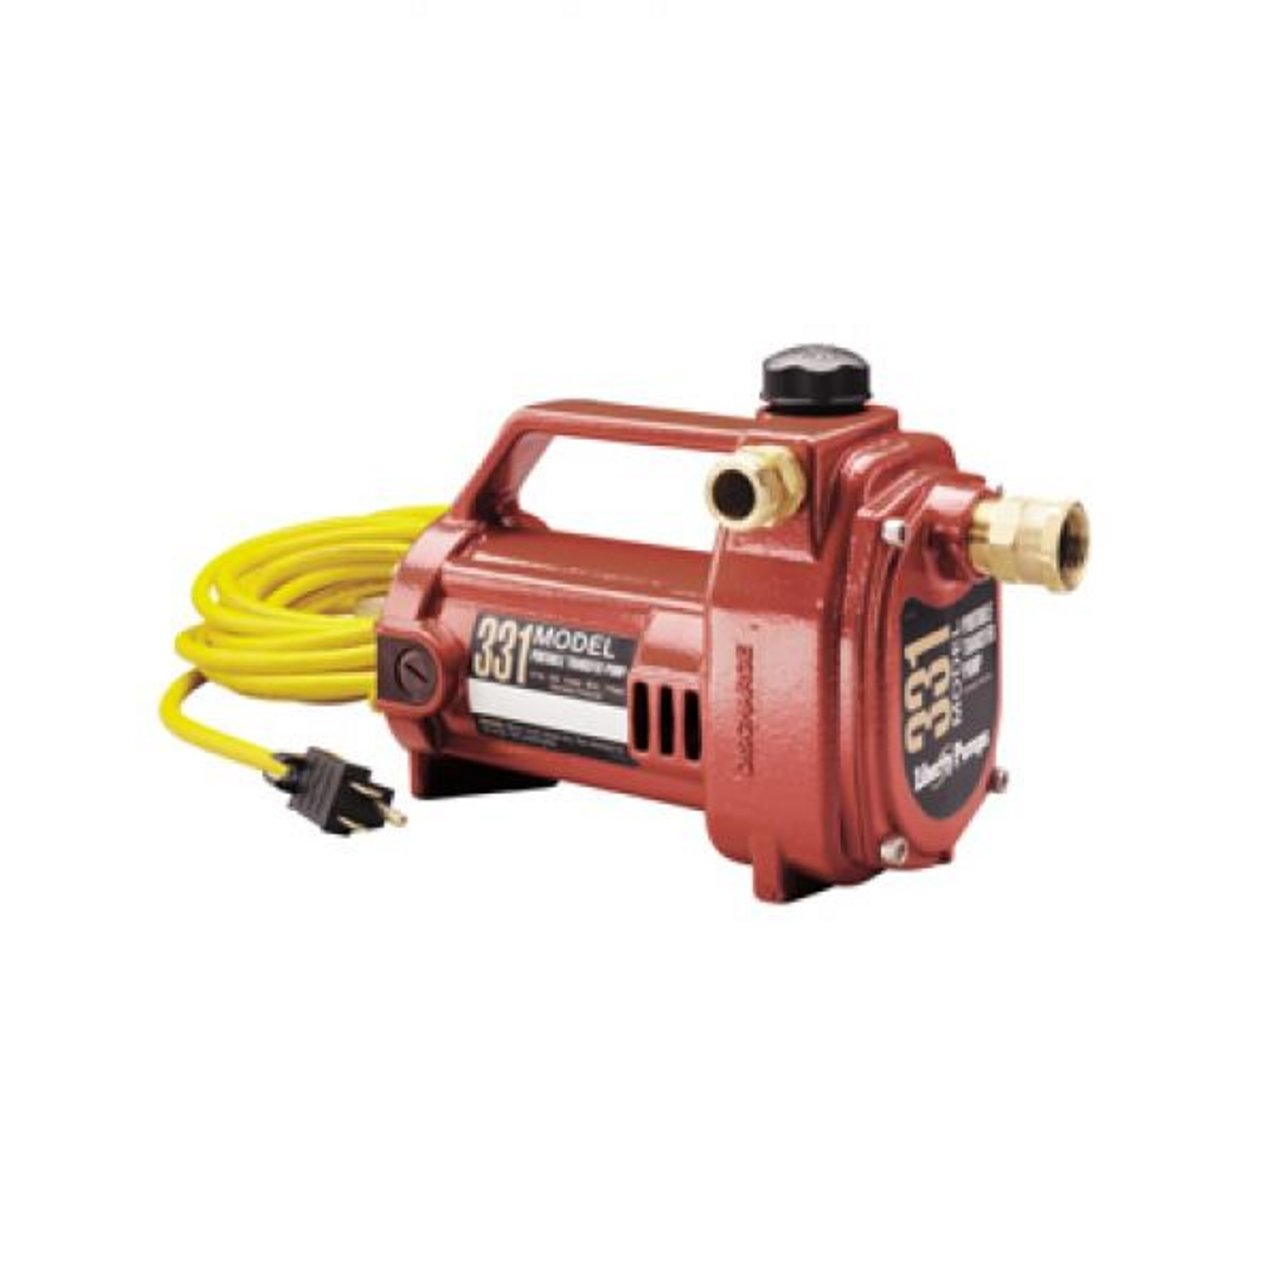 Liberty Pumps 331 Portable Transfer Pump, one-size, RED by Liberty Pumps